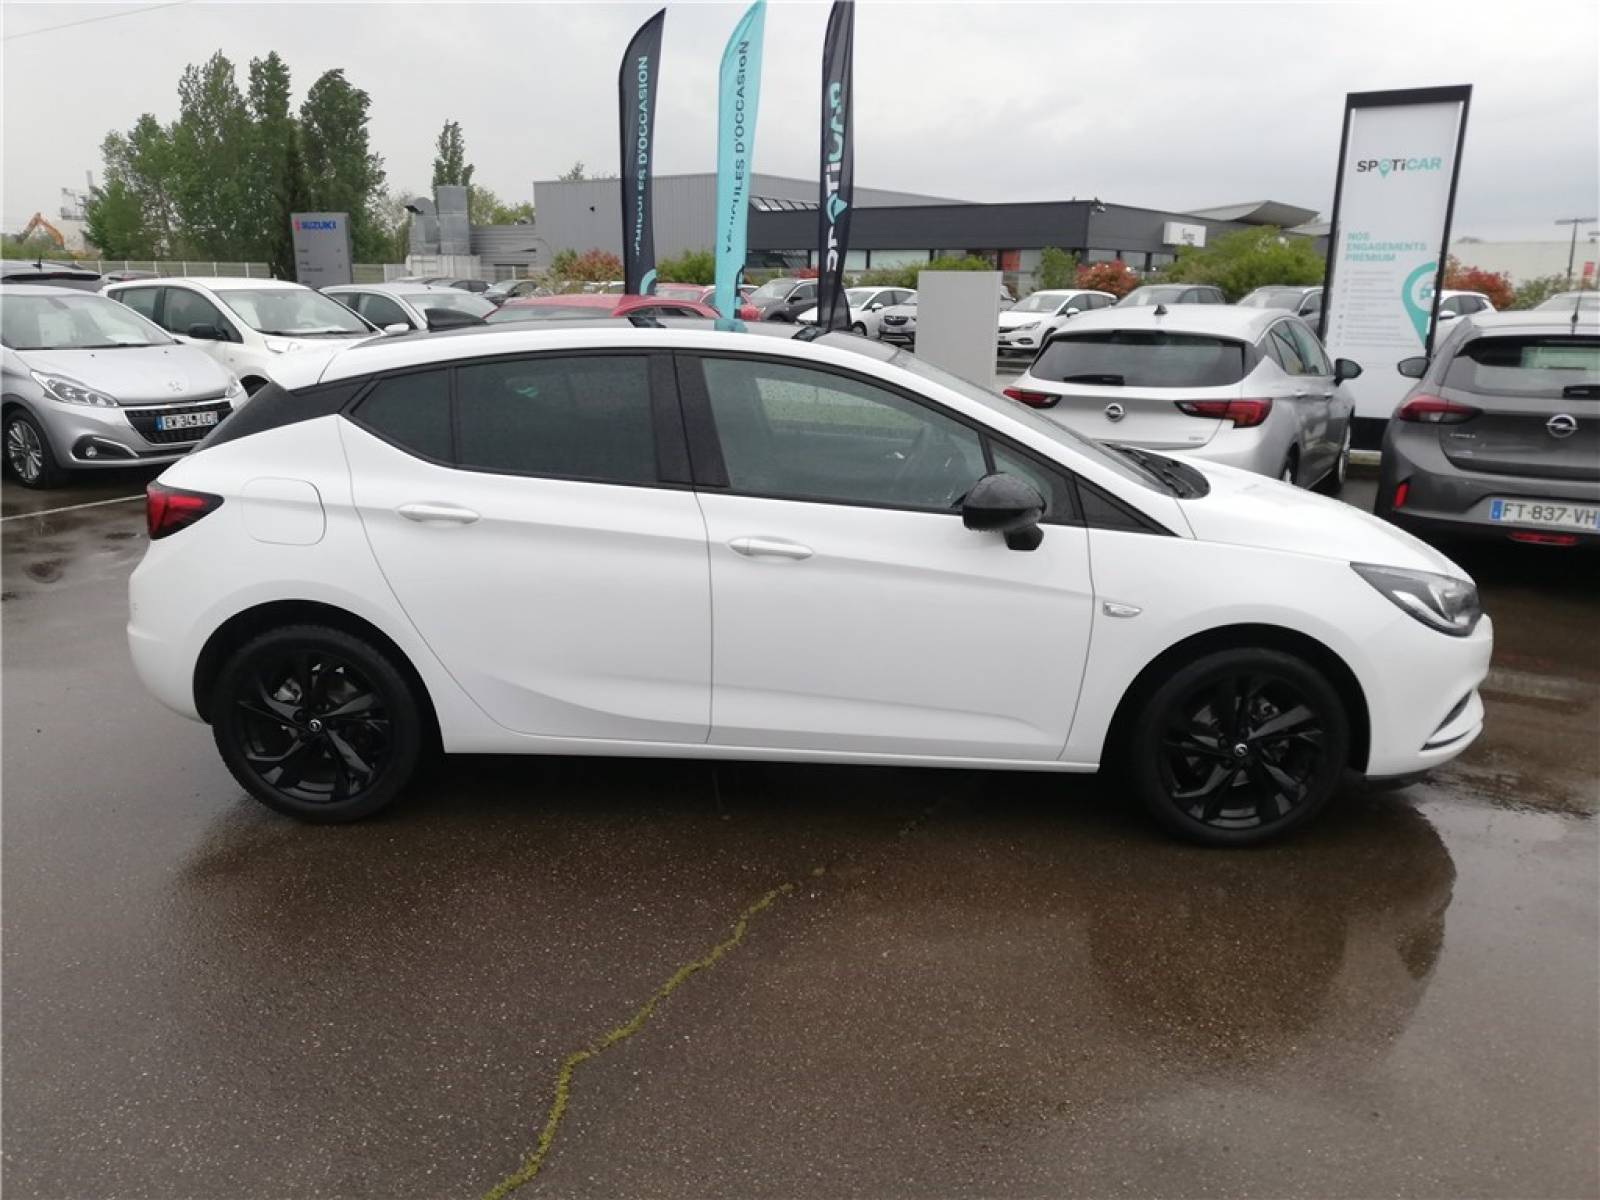 OPEL Astra 1.0 Turbo 105 ch ECOTEC Start/Stop - véhicule d'occasion - Groupe Guillet - Opel Magicauto - Chalon-sur-Saône - 71380 - Saint-Marcel - 3